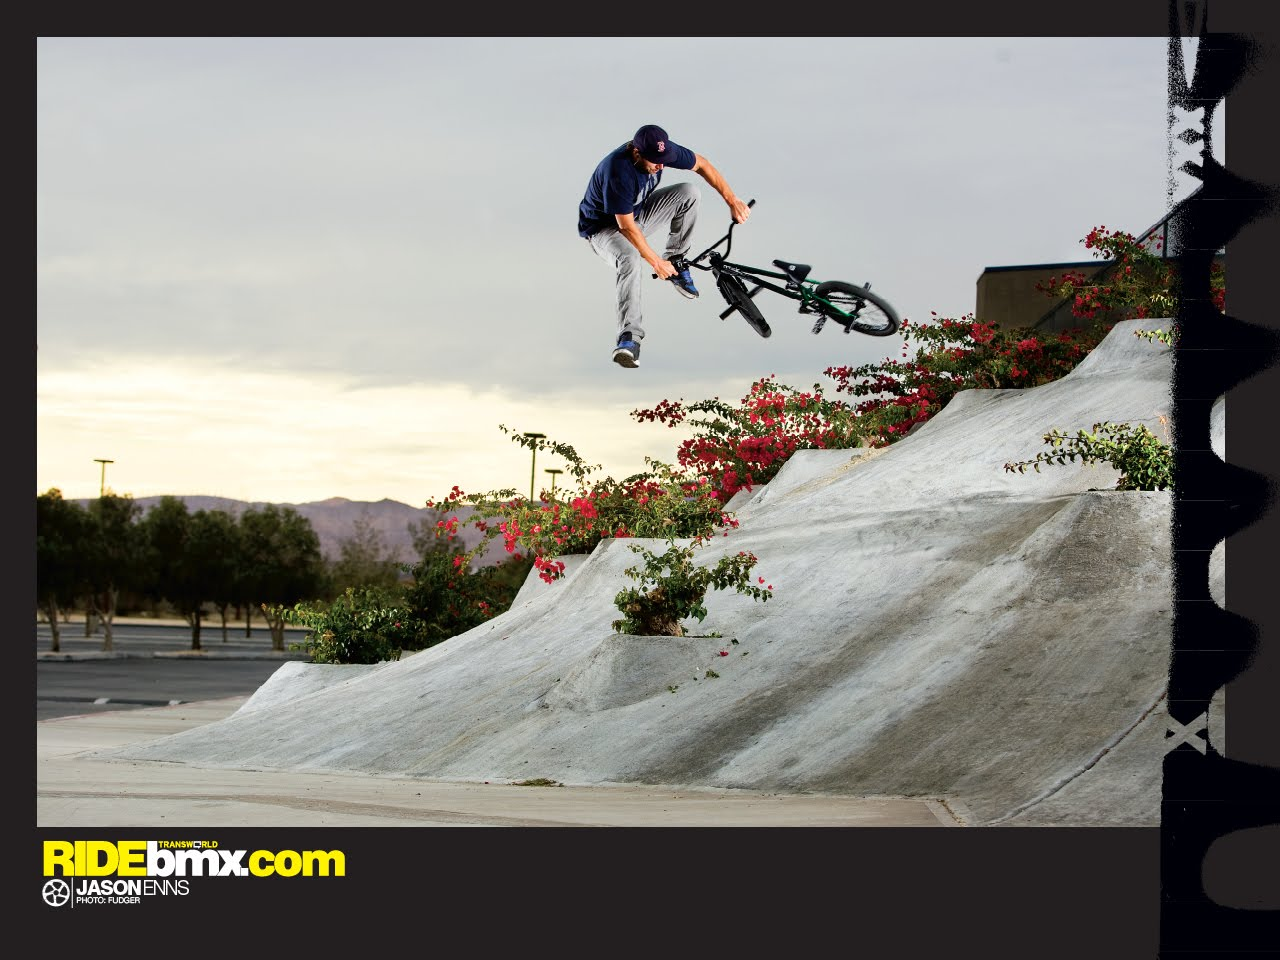 Ride Bmx Wallpapers 2014